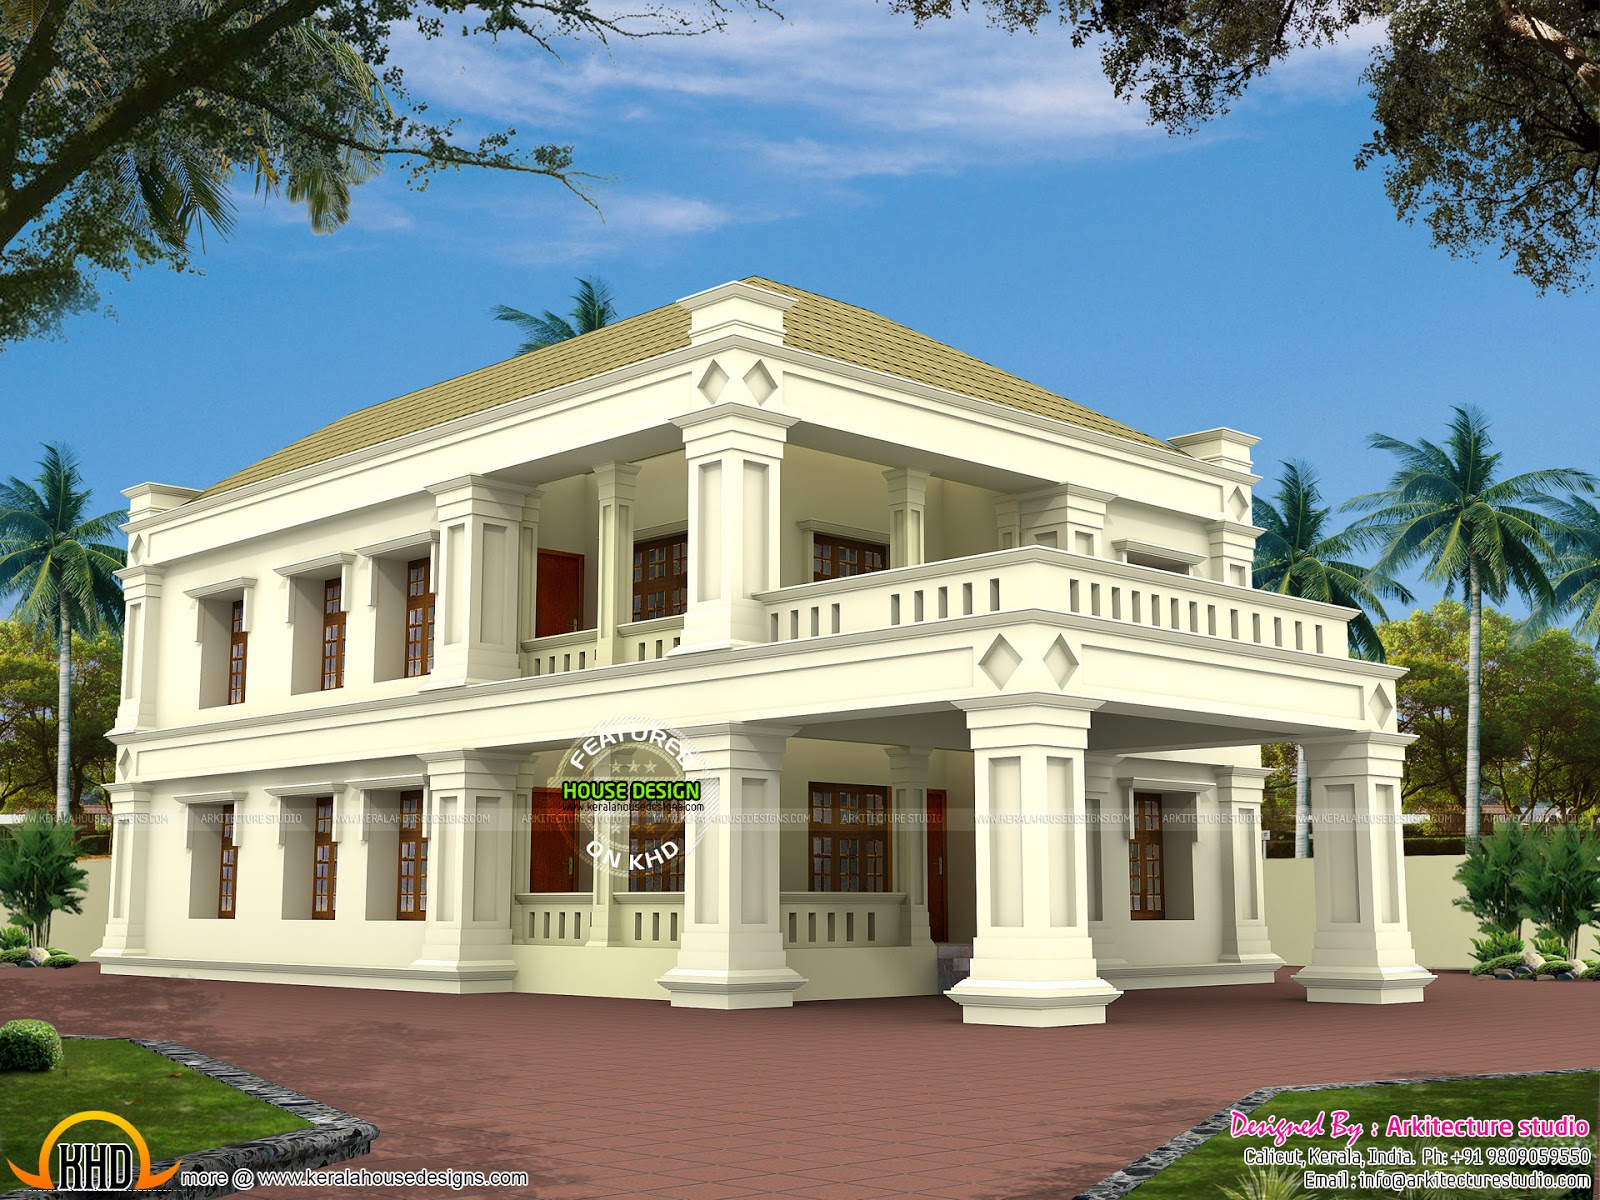 Square pillar type colonial mix home kerala home design for Colonial style home design in kerala